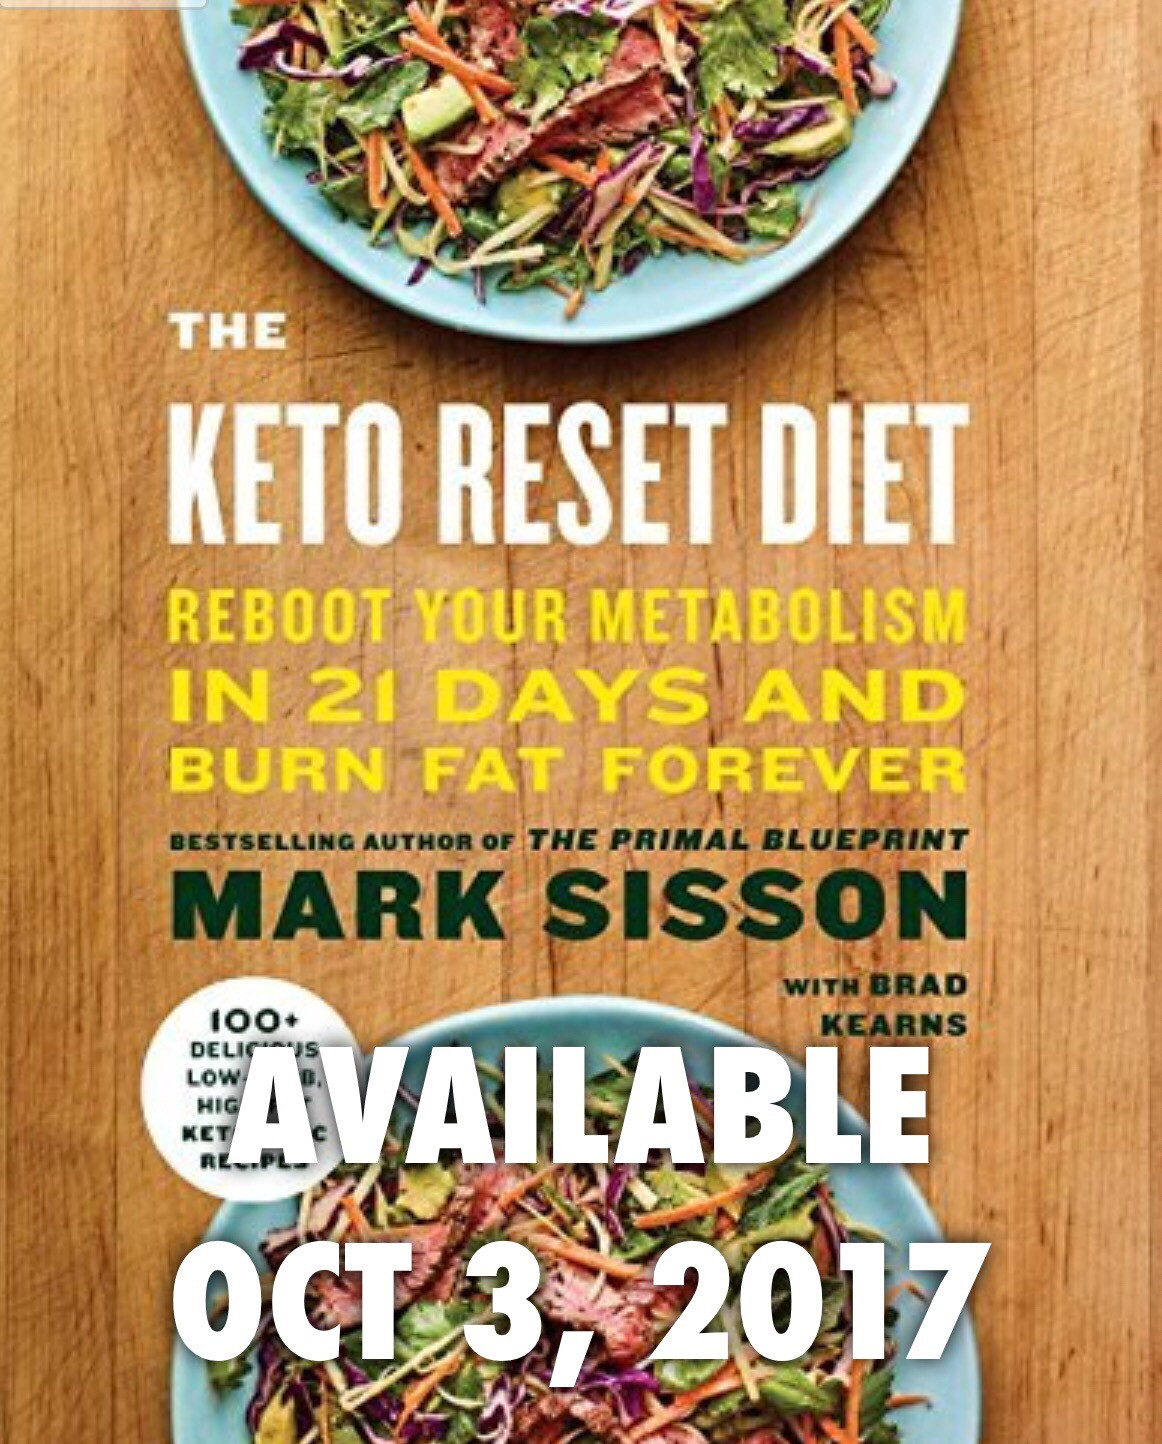 Keto Reset Diet Book  The Rabbit Hole Essential Reading Nutrition Edition